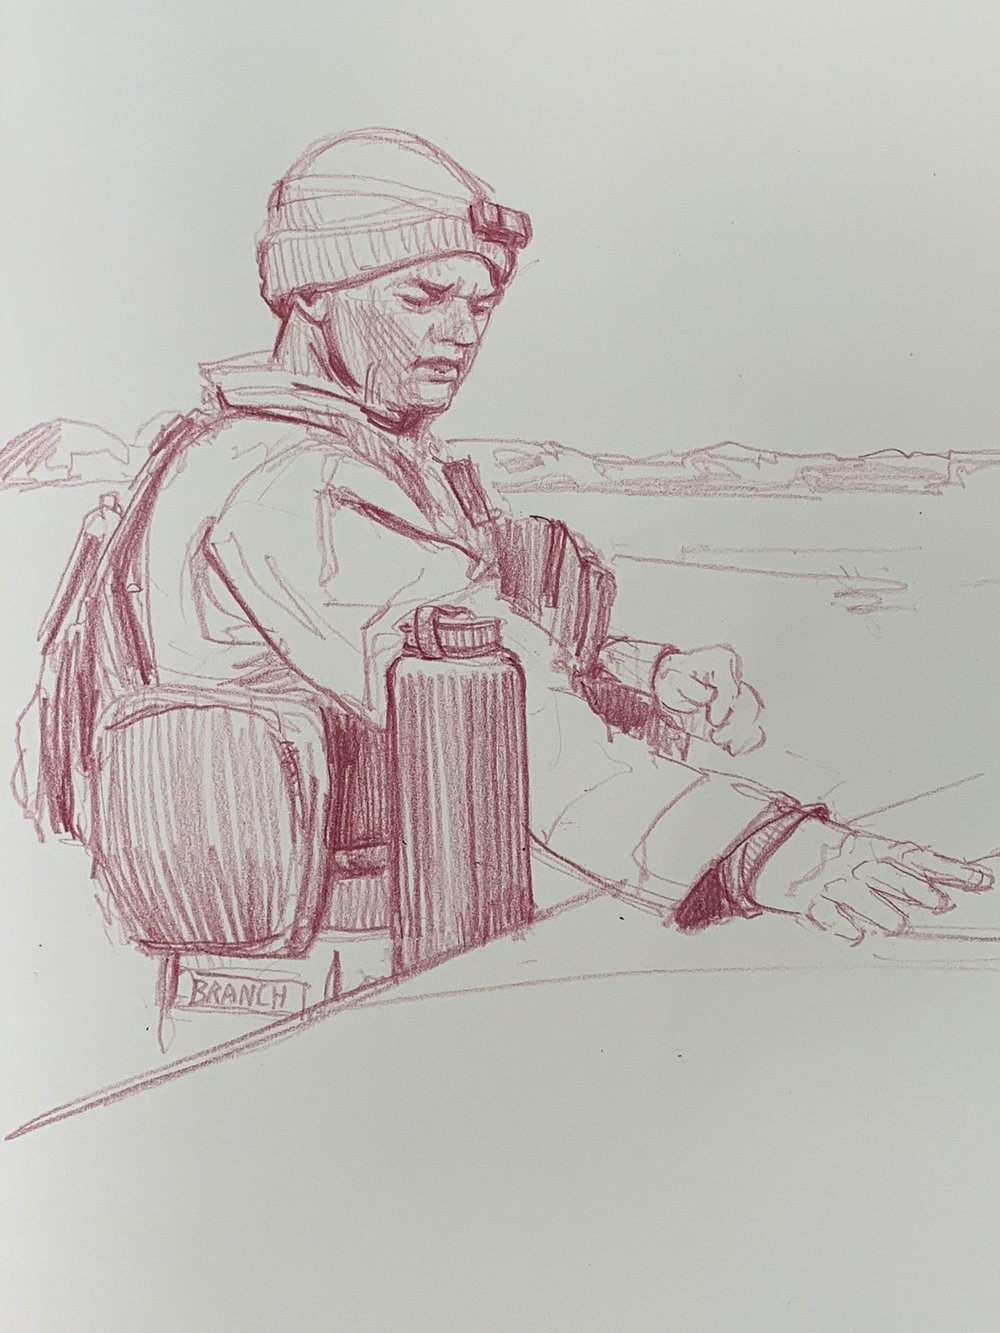 Lieutenant Branch XO of Charlie Battery, 1st Bn, 1/11 planning  first movements of the day on the hood of his Humvee — ITX 2018